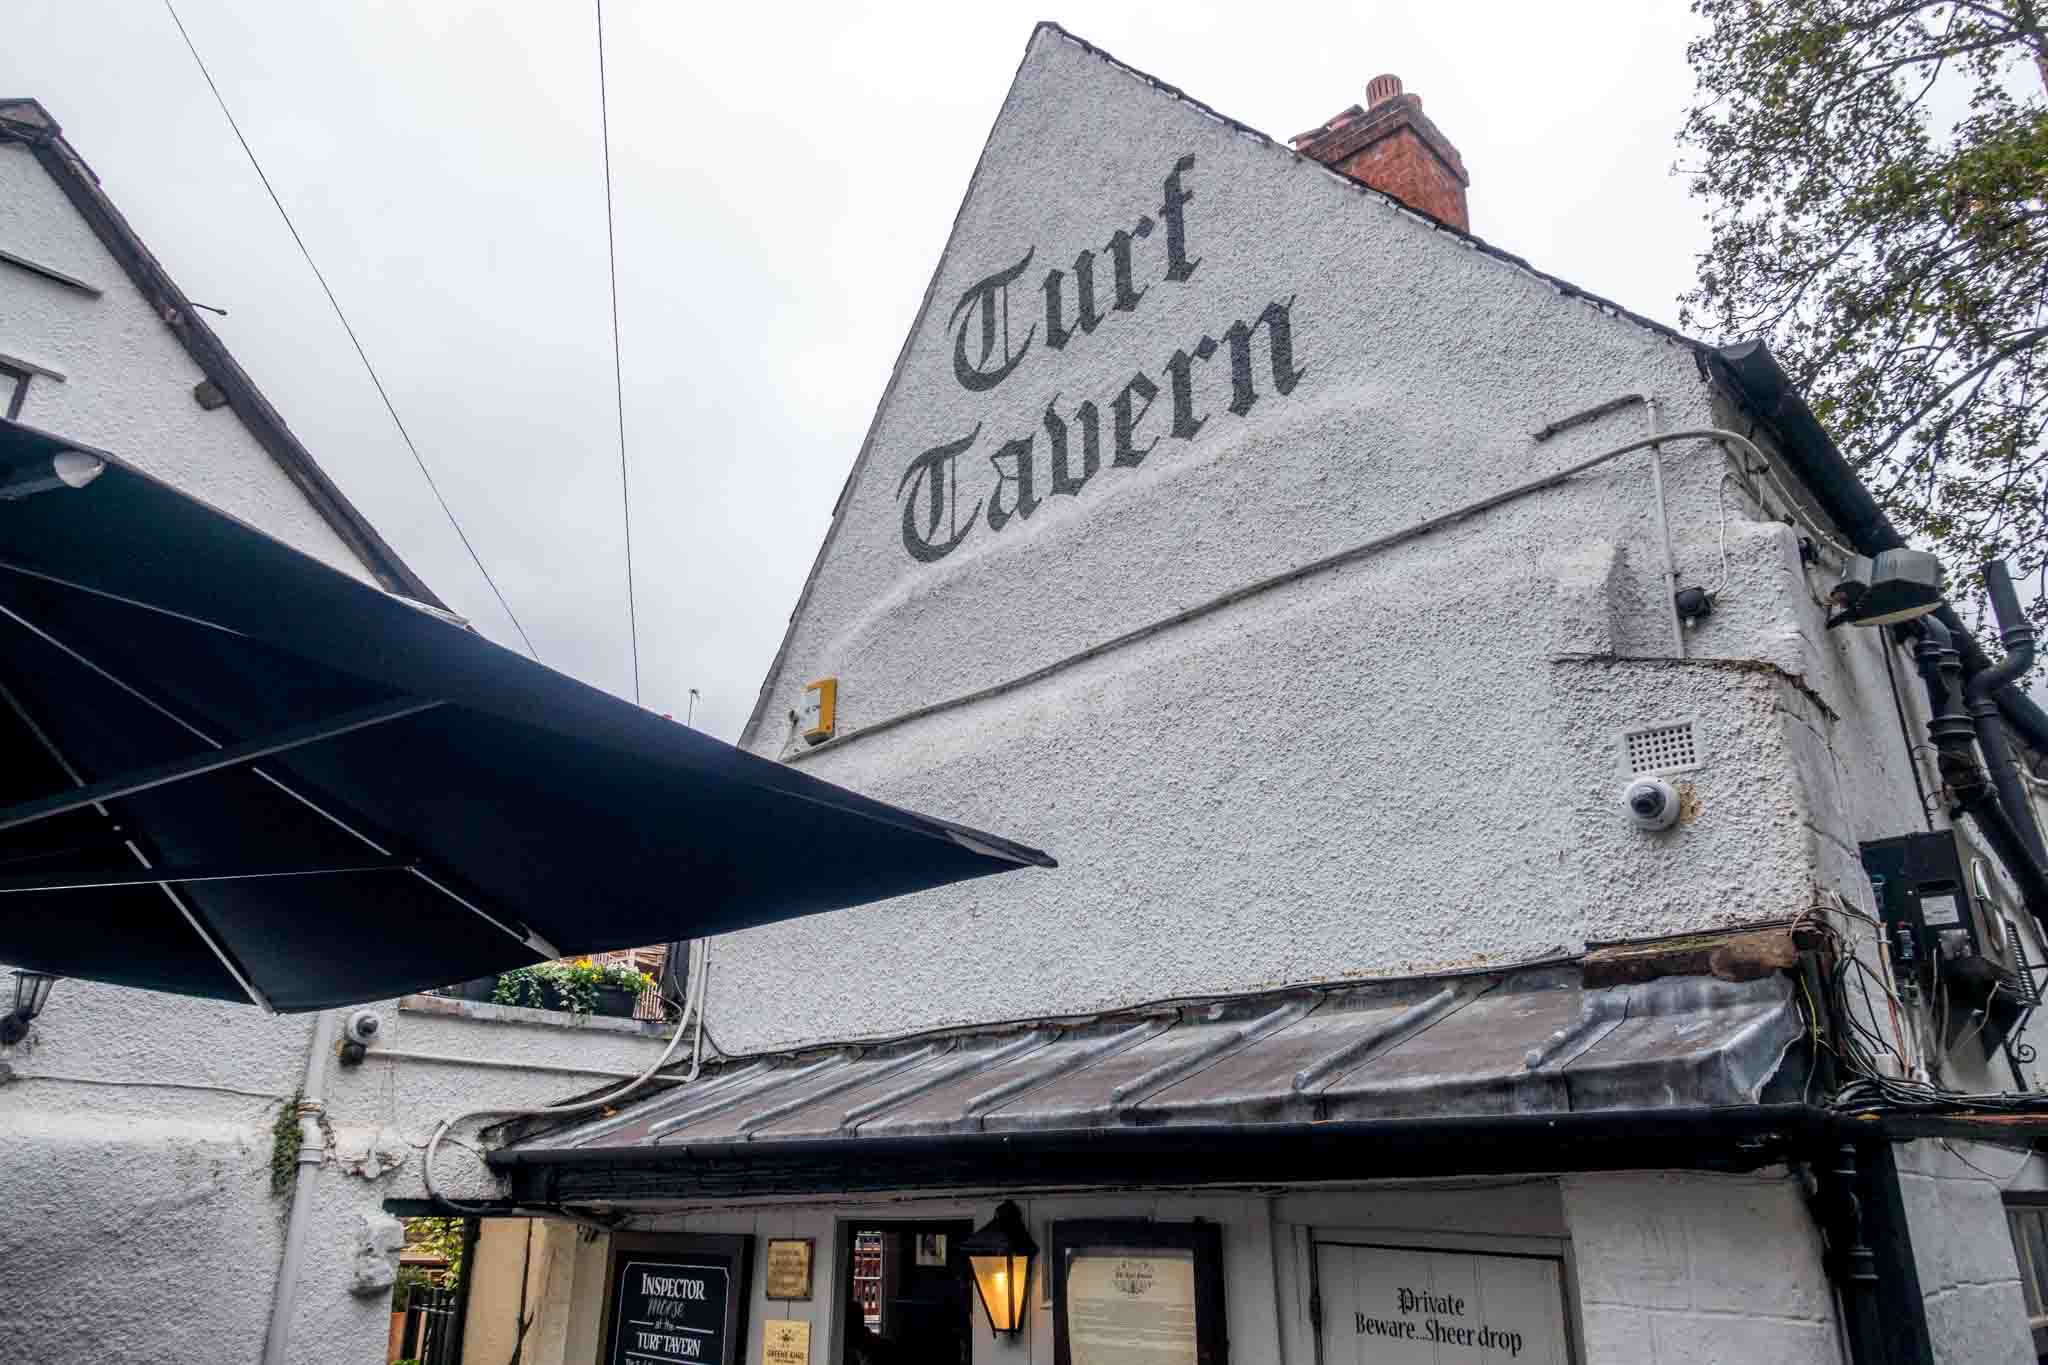 Exterior of a white stucco building with a black sign for Turf Tavern